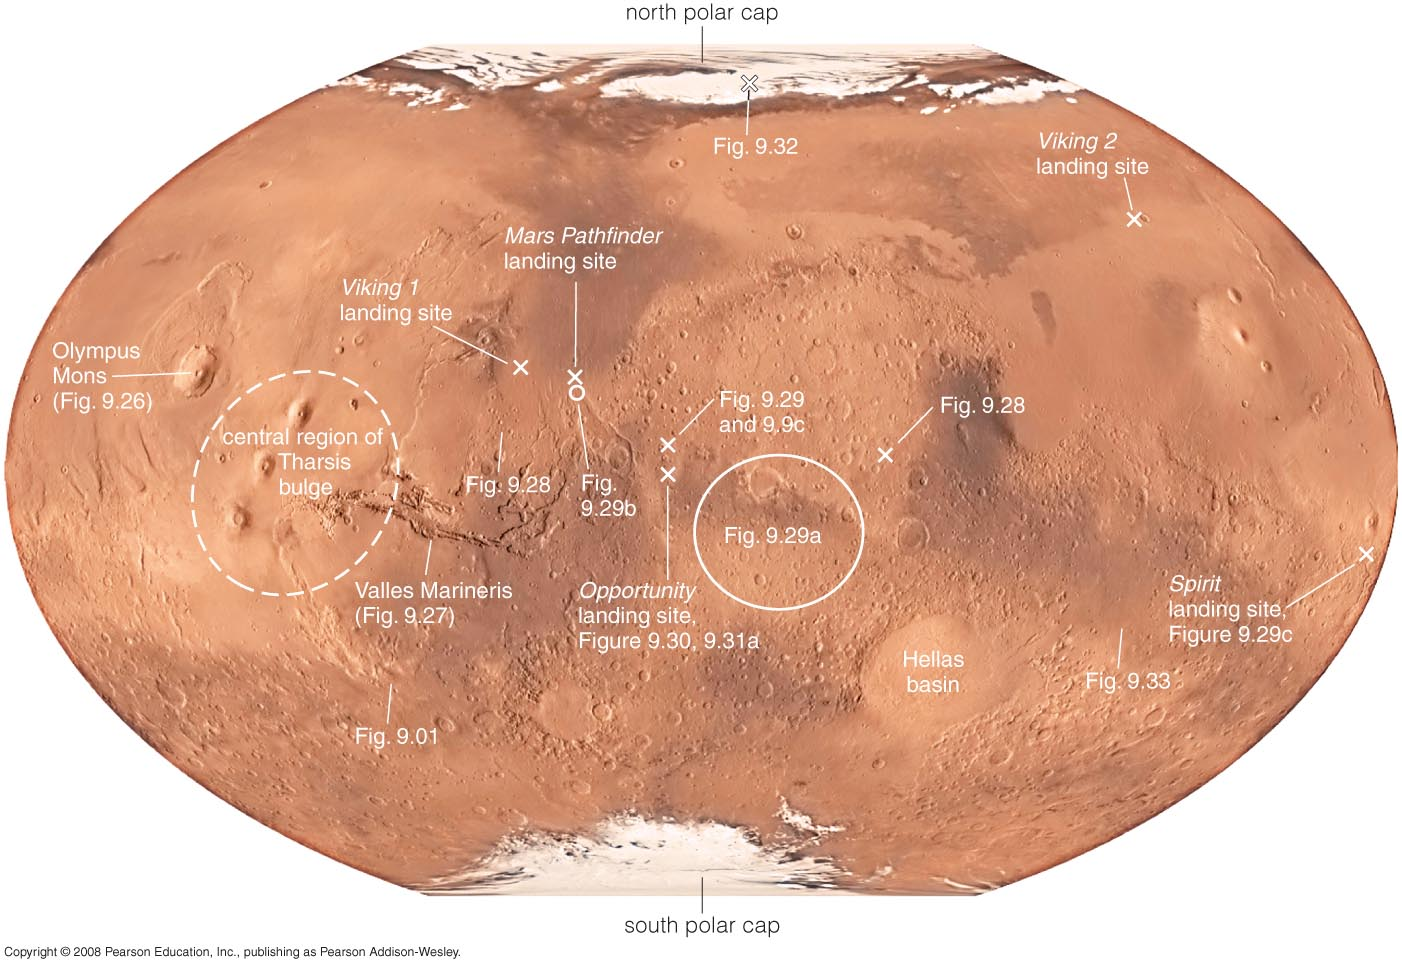 an analysis of the geology of mars The danakil depression in ethiopia is a spectacular, hostile environment that may resemble conditions encountered on mars and titan.